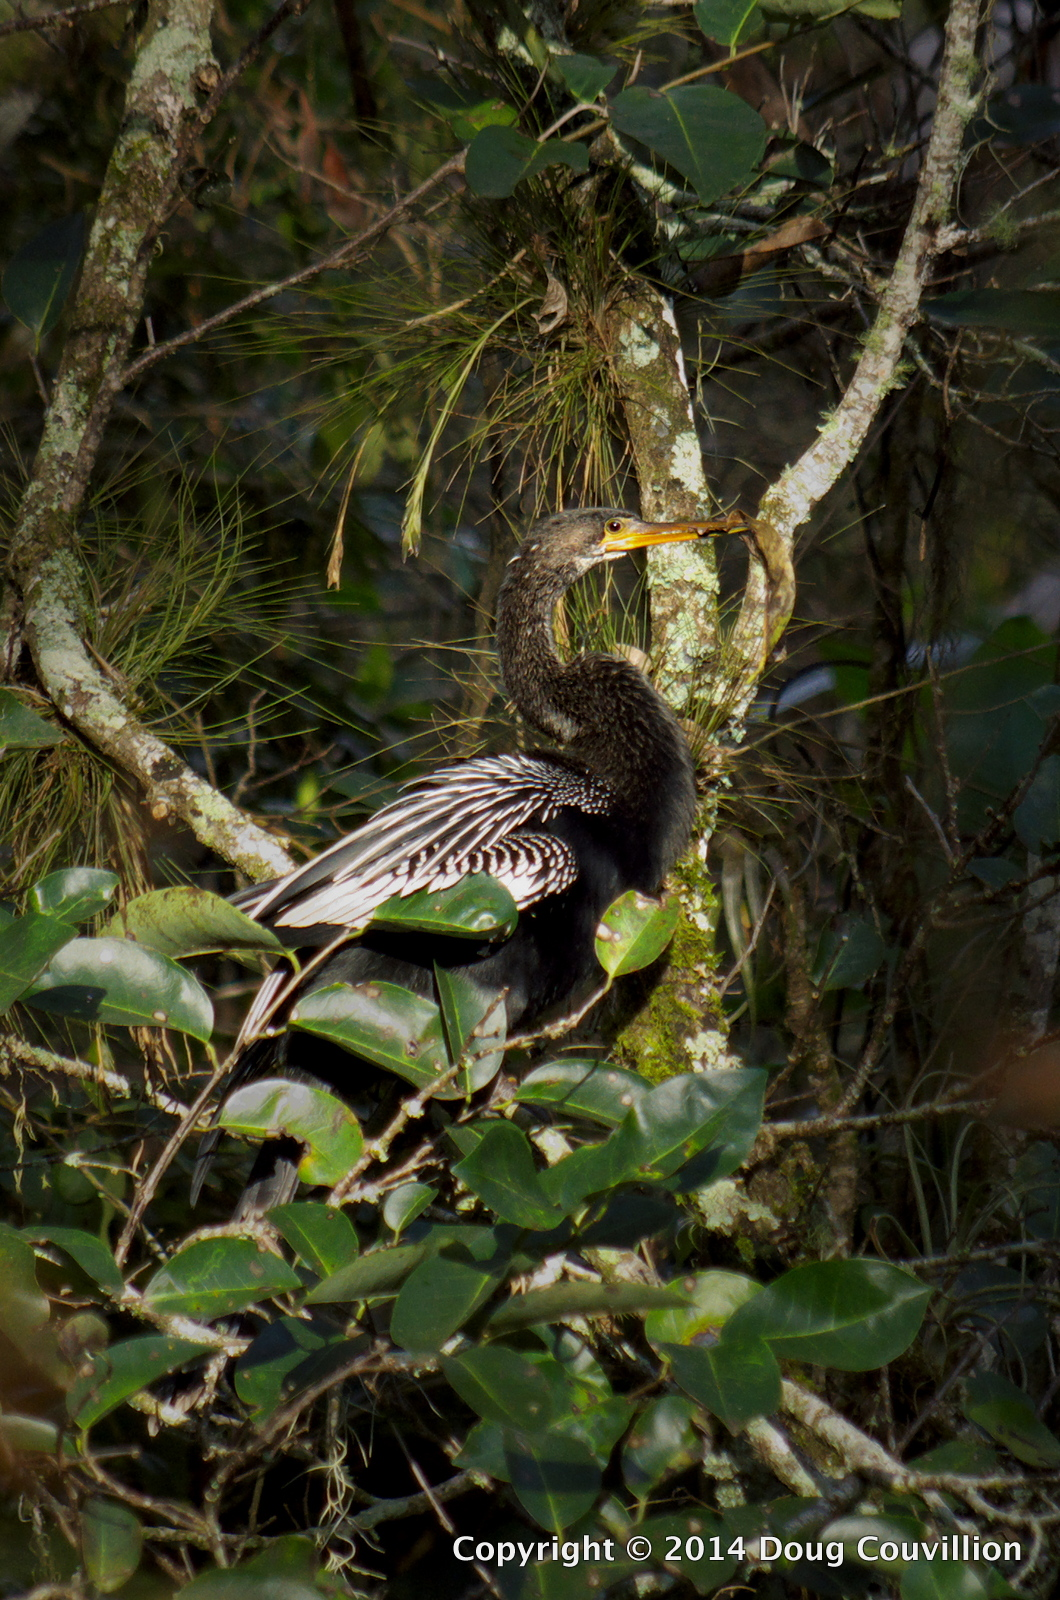 photograph of an Anhinga in a mangrove tree